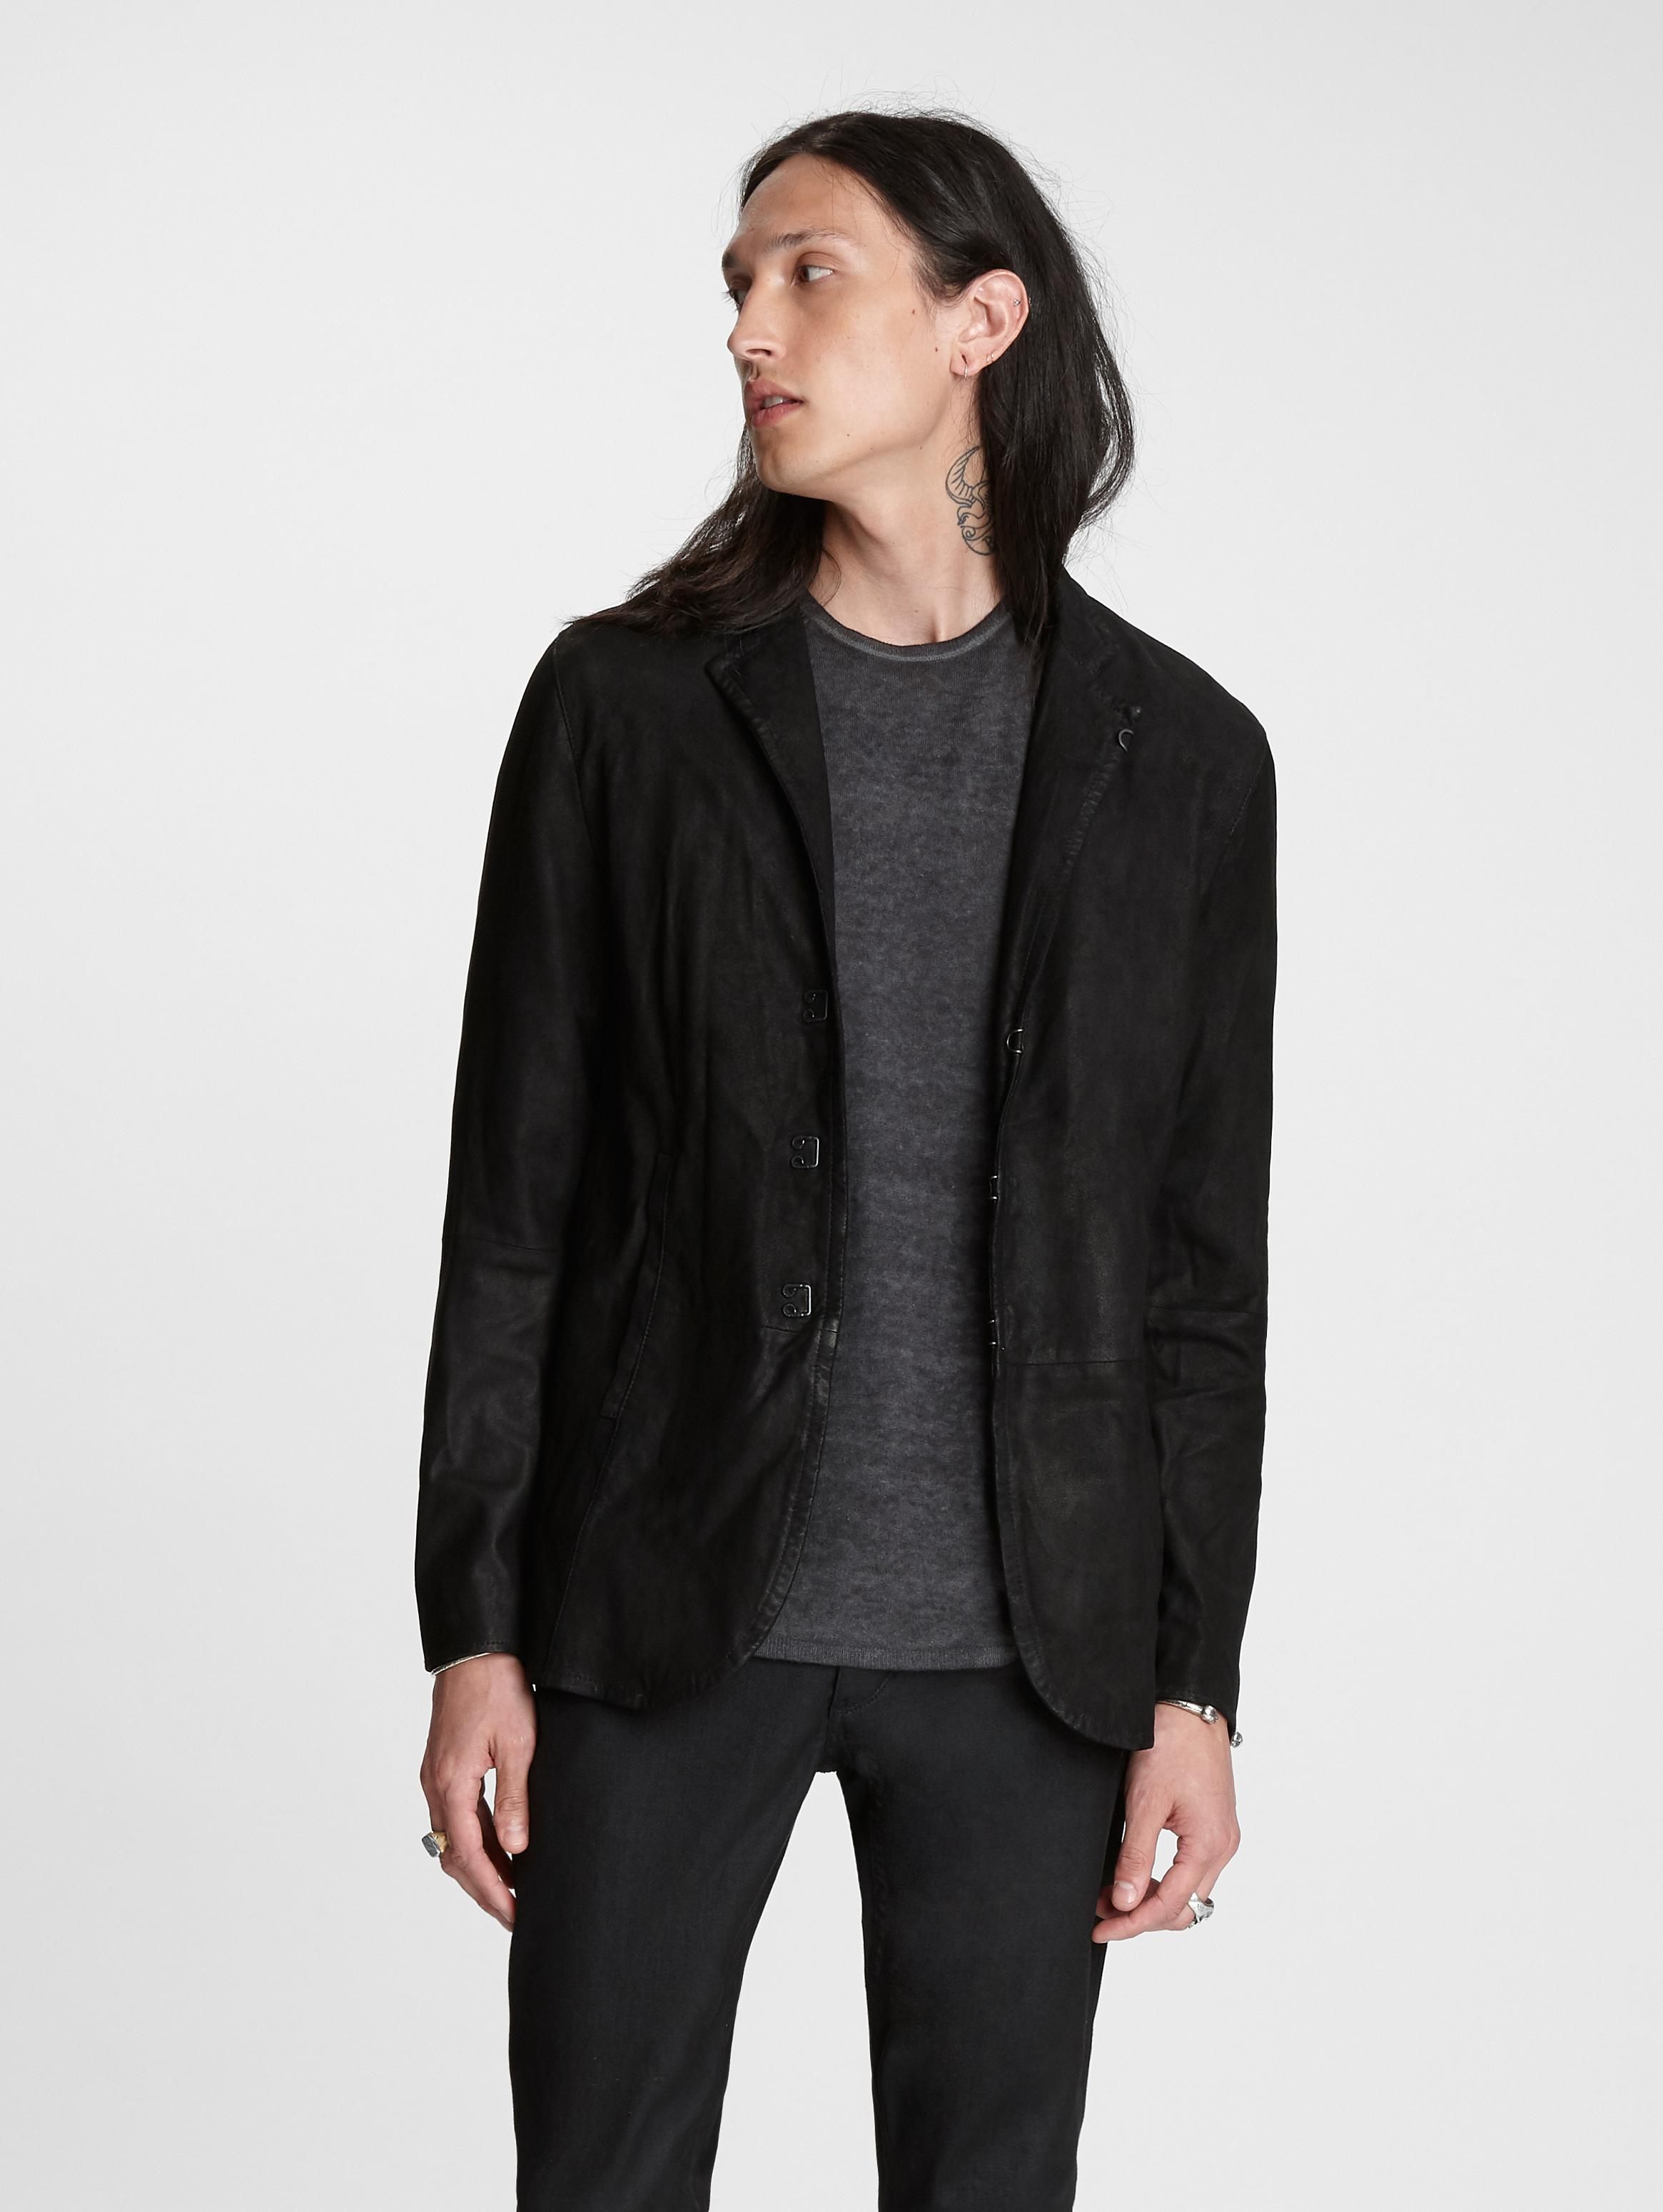 John Varvatos Hook & Bar Suede Jacket Black